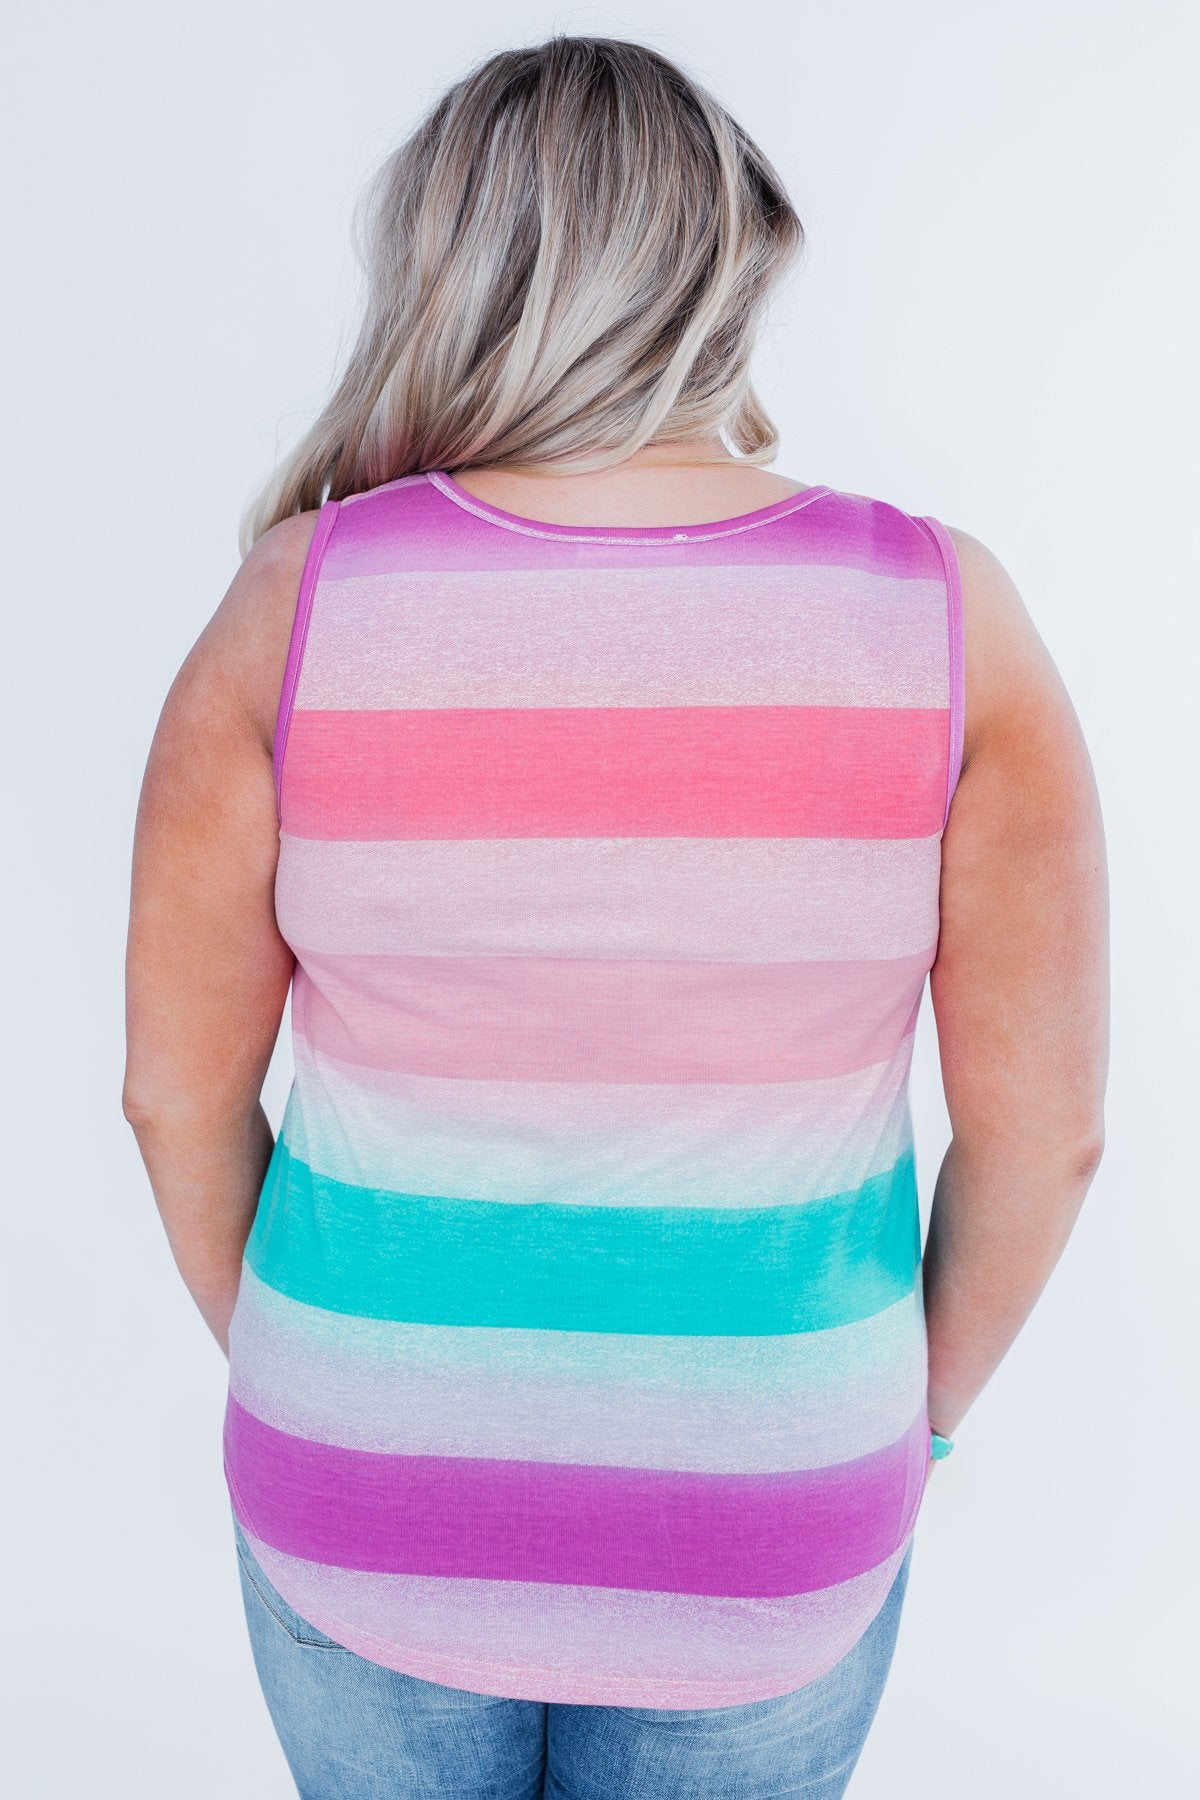 Never Fade Away Striped Tank Top- Pink & Teal Tones